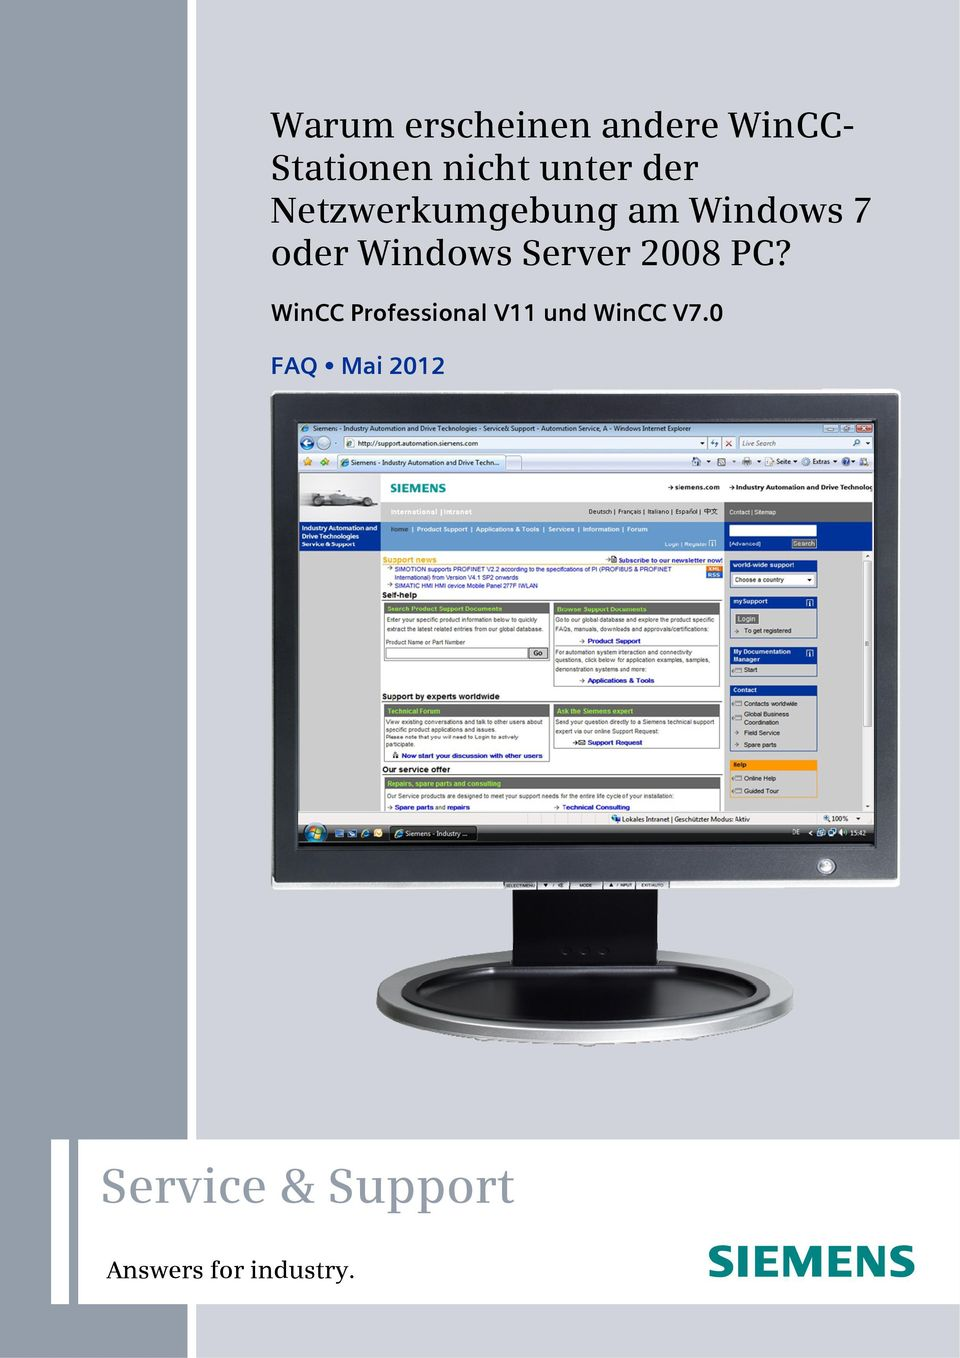 Windows Server 2008 PC?